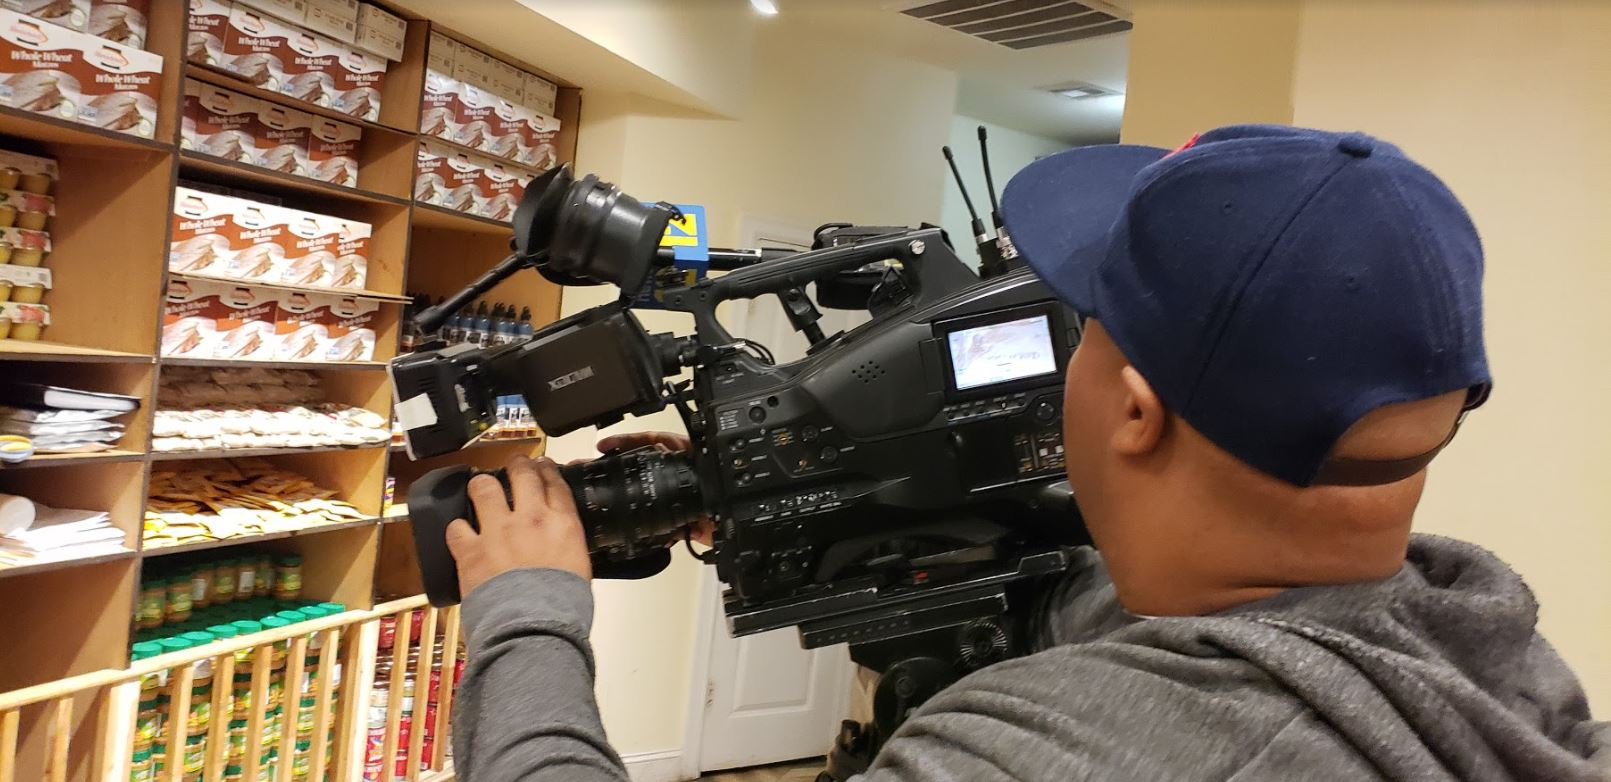 Reporter Christian L Braxton of News12 Brooklyn at Masbia documenting during Purim